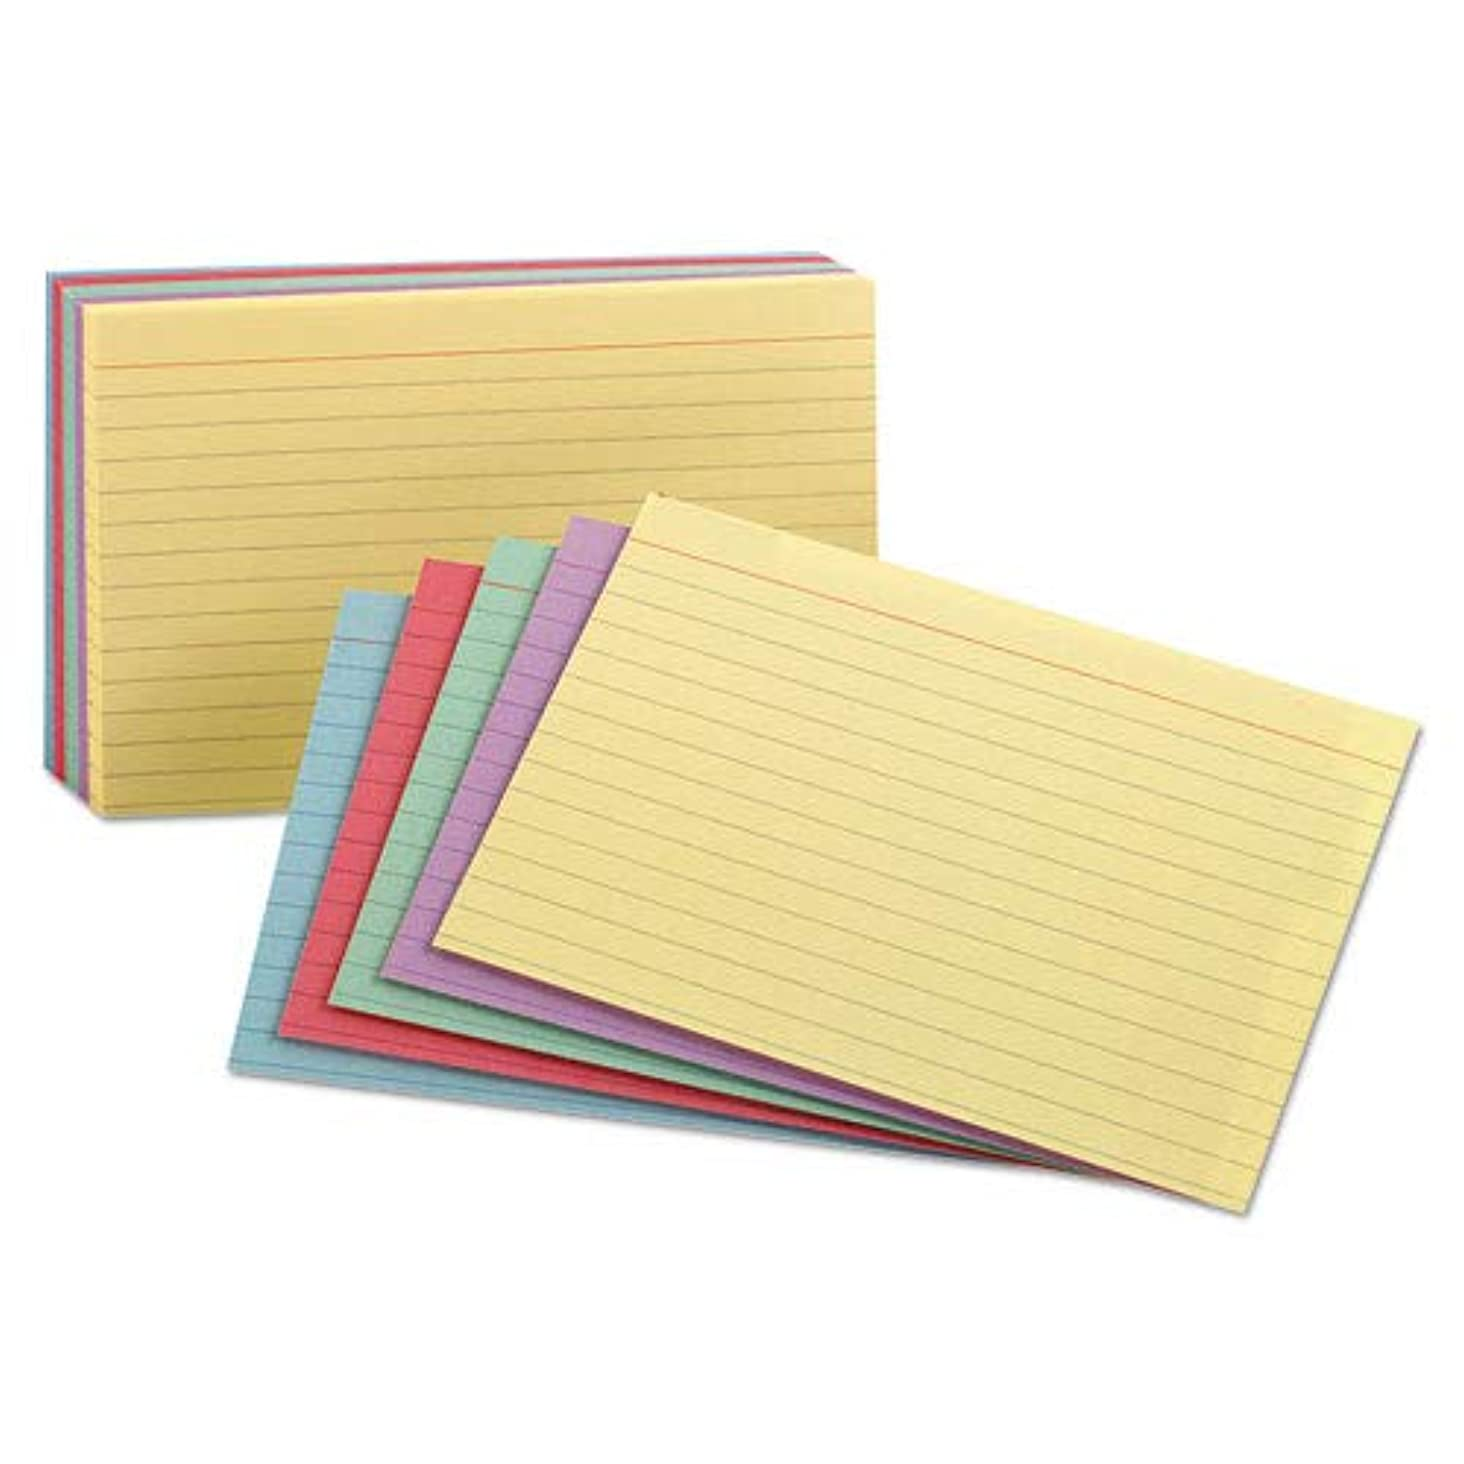 Oxford Index Cards, Assorted Colors, 5 x 8, Ruled, 5 Pack of 100 Cards, Total 500 Cards (35810)